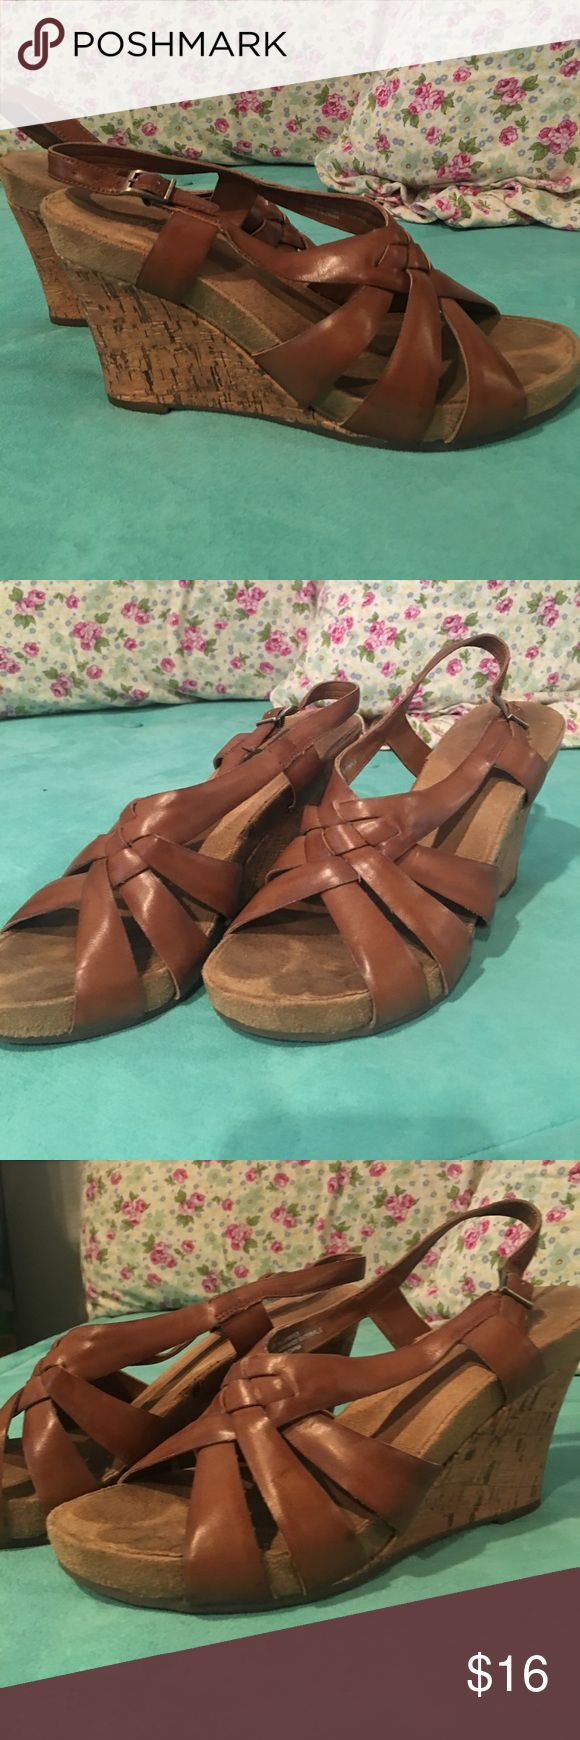 Tan wedge Aerosoles sandals Super cute and comfortable tan wedge sandals made by aerosoles. Super versatile and neutral. AEROSOLES Shoes Sandals